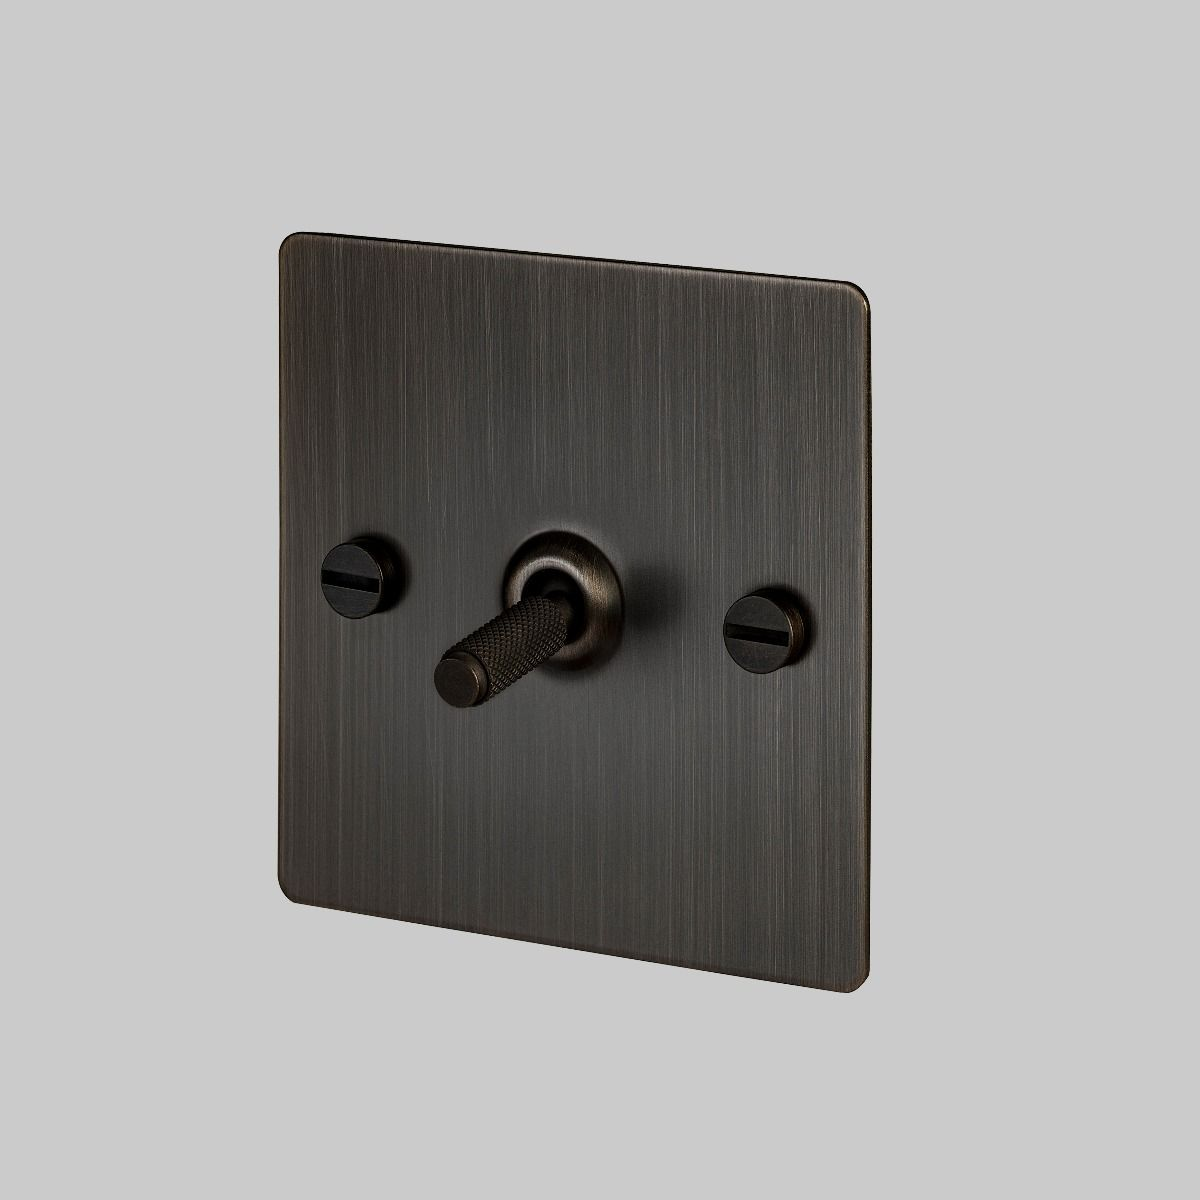 Buster + Punch Toggle Switch 1G